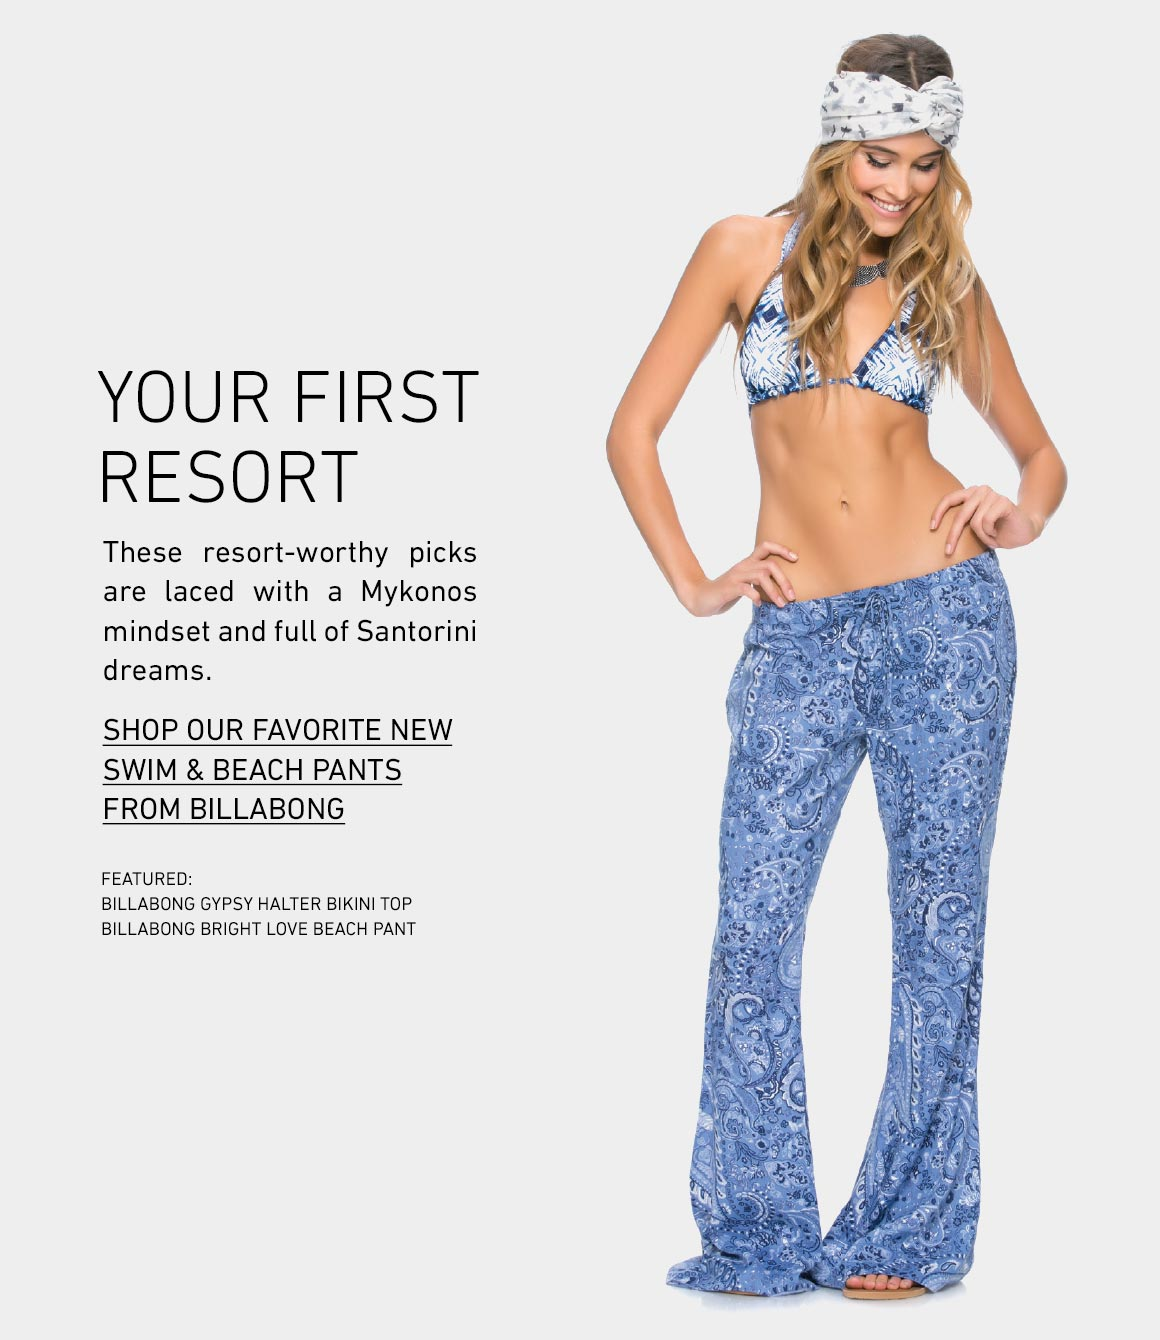 Shop New Billabong